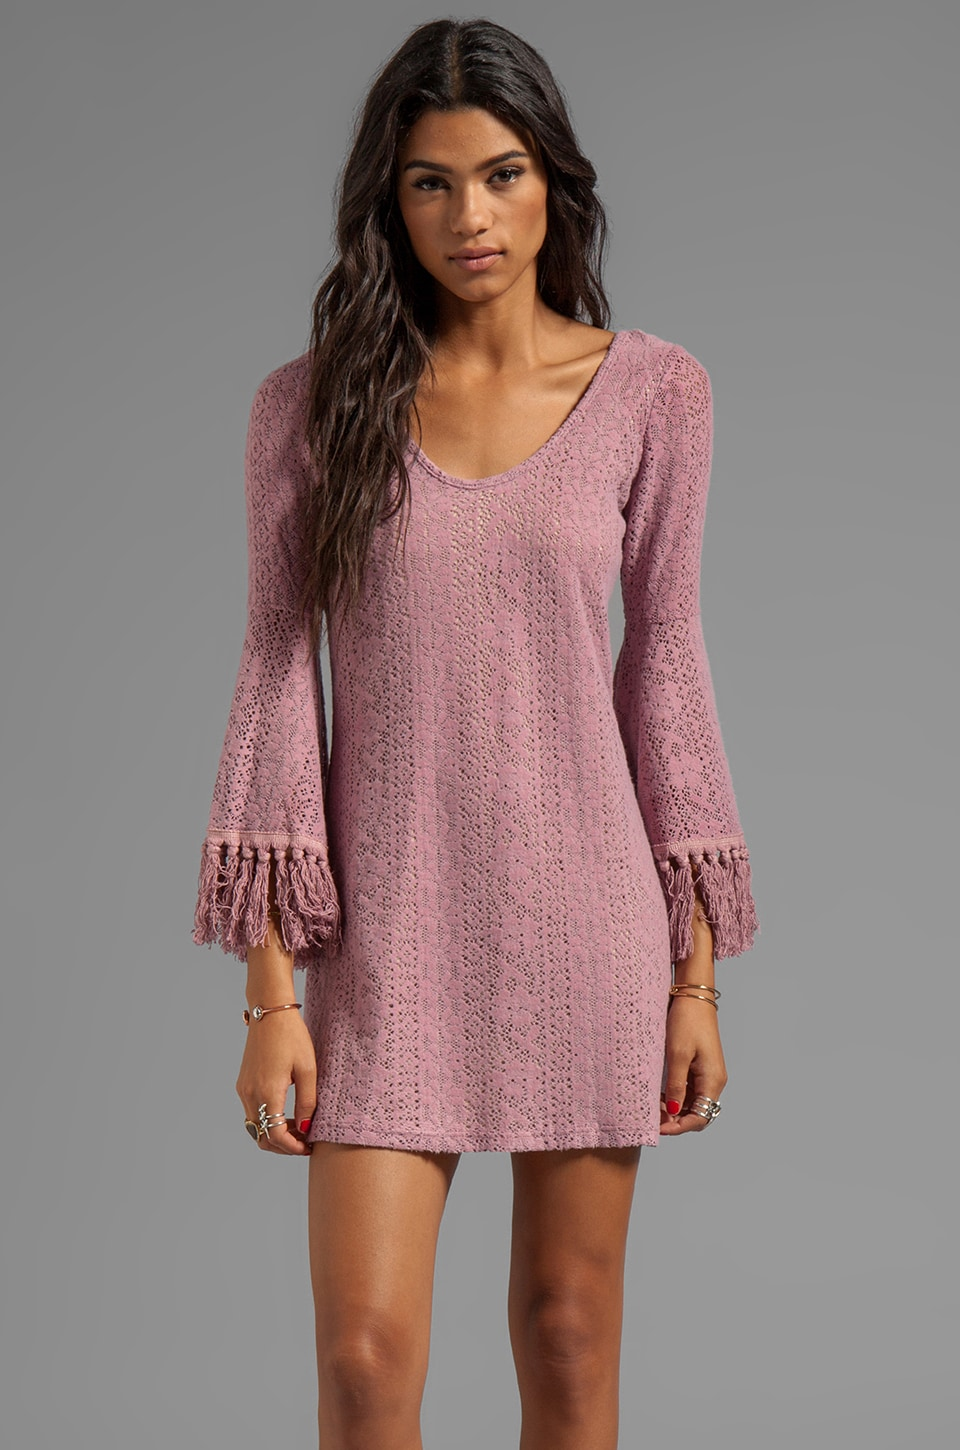 VAVA by Joy Han Chelsea Bell Sleeve Dress in Rose